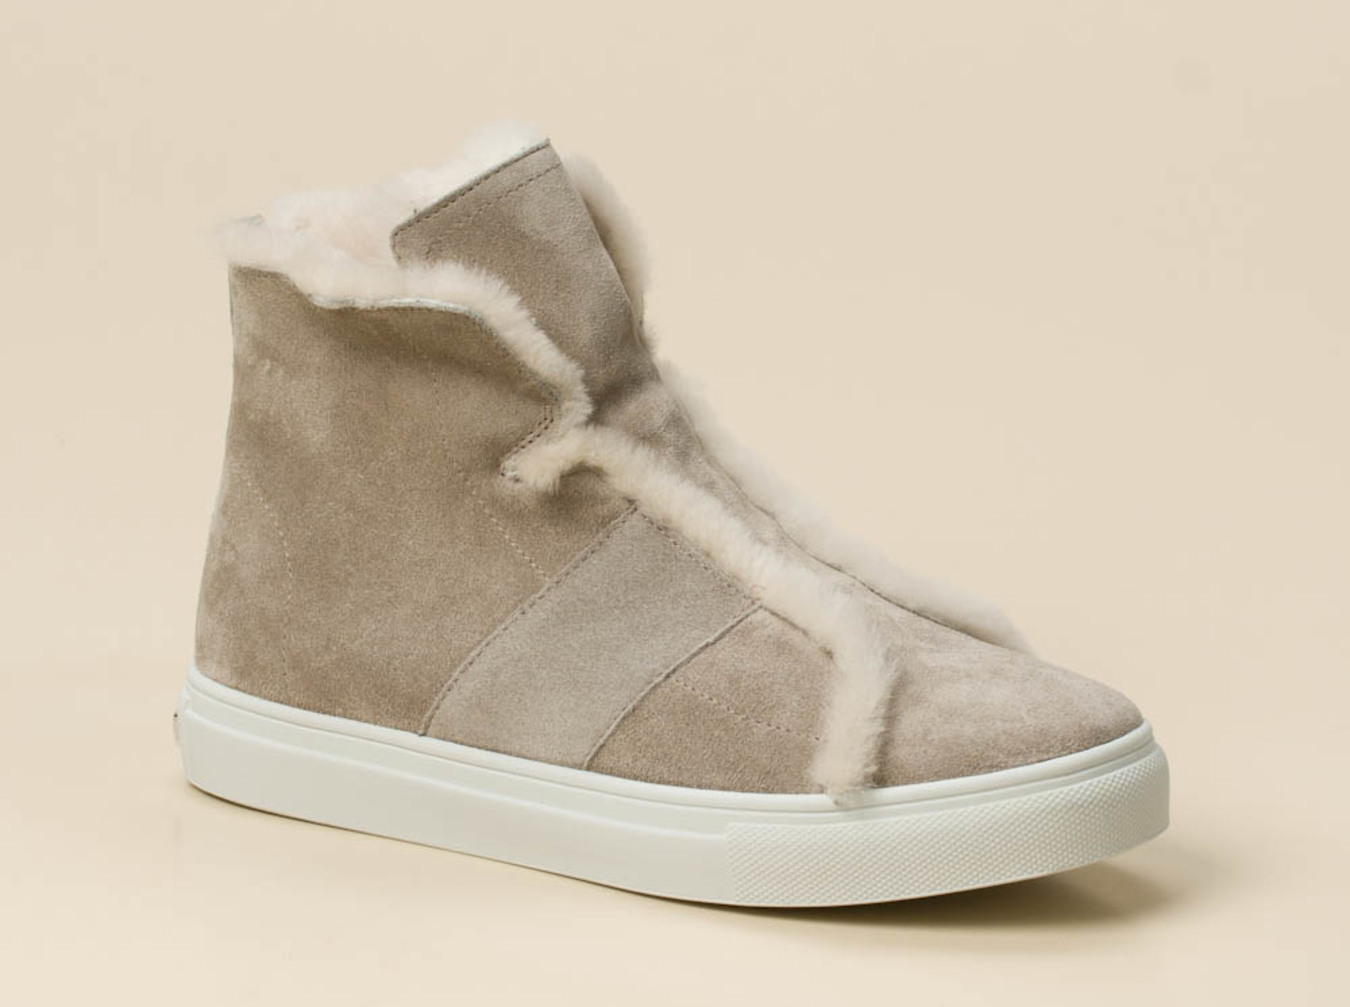 elegant shoes thoughts on nice shoes Sneaker high